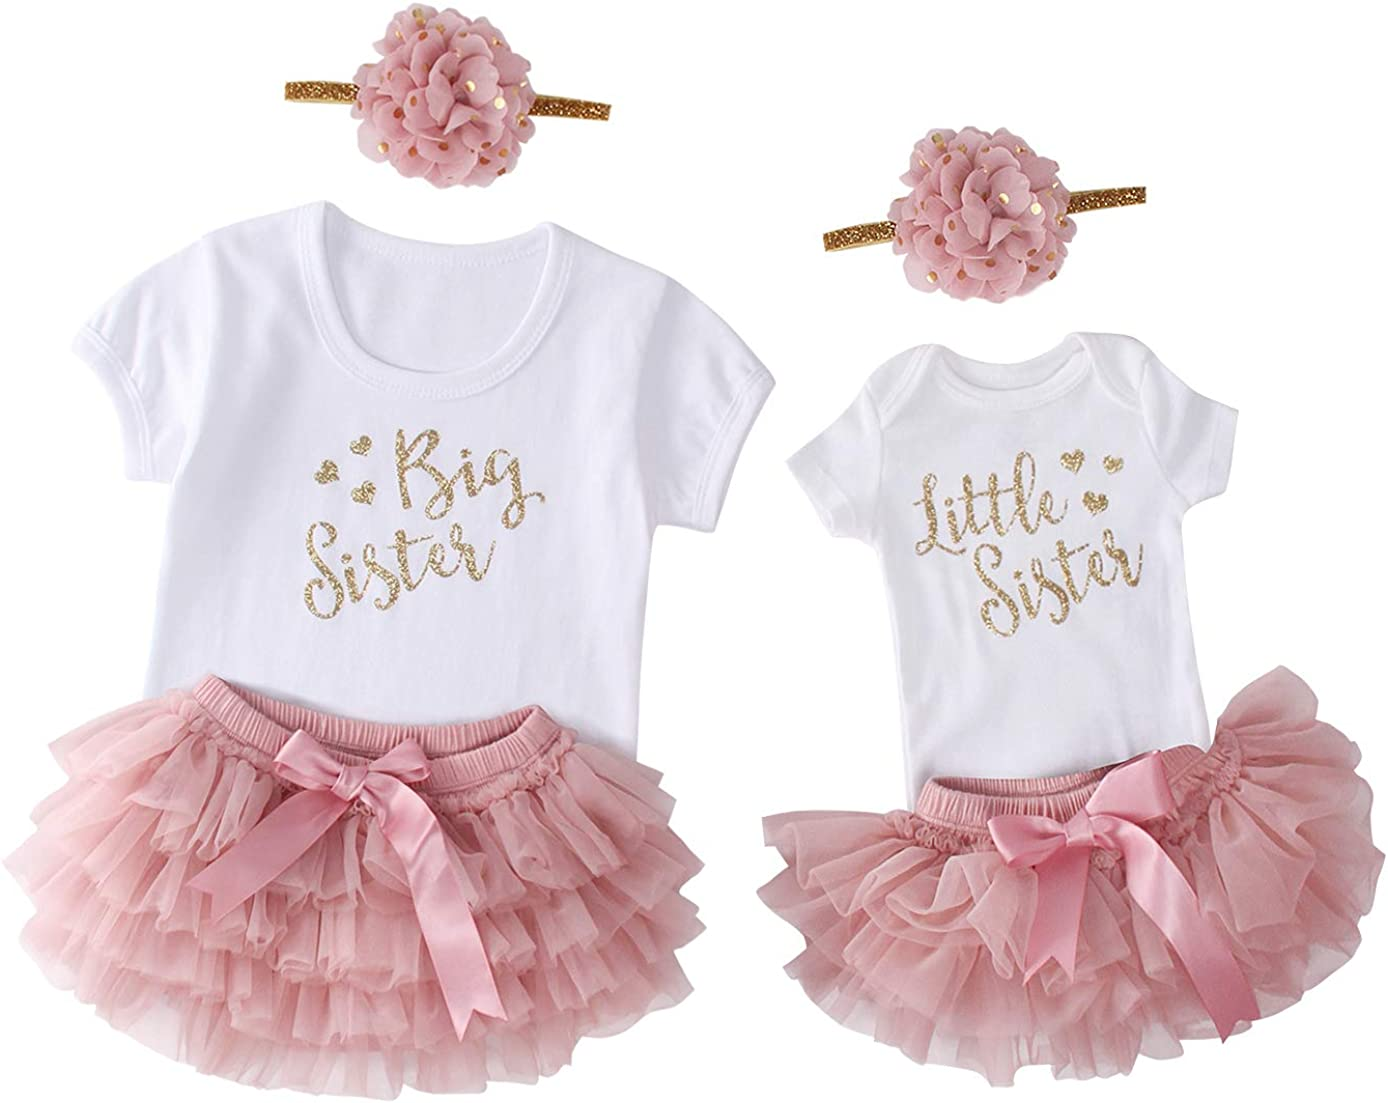 3pcs Newborn Toddler Big Sister Little Sister Matching Outfits Baby Girl Coming Home Outfits